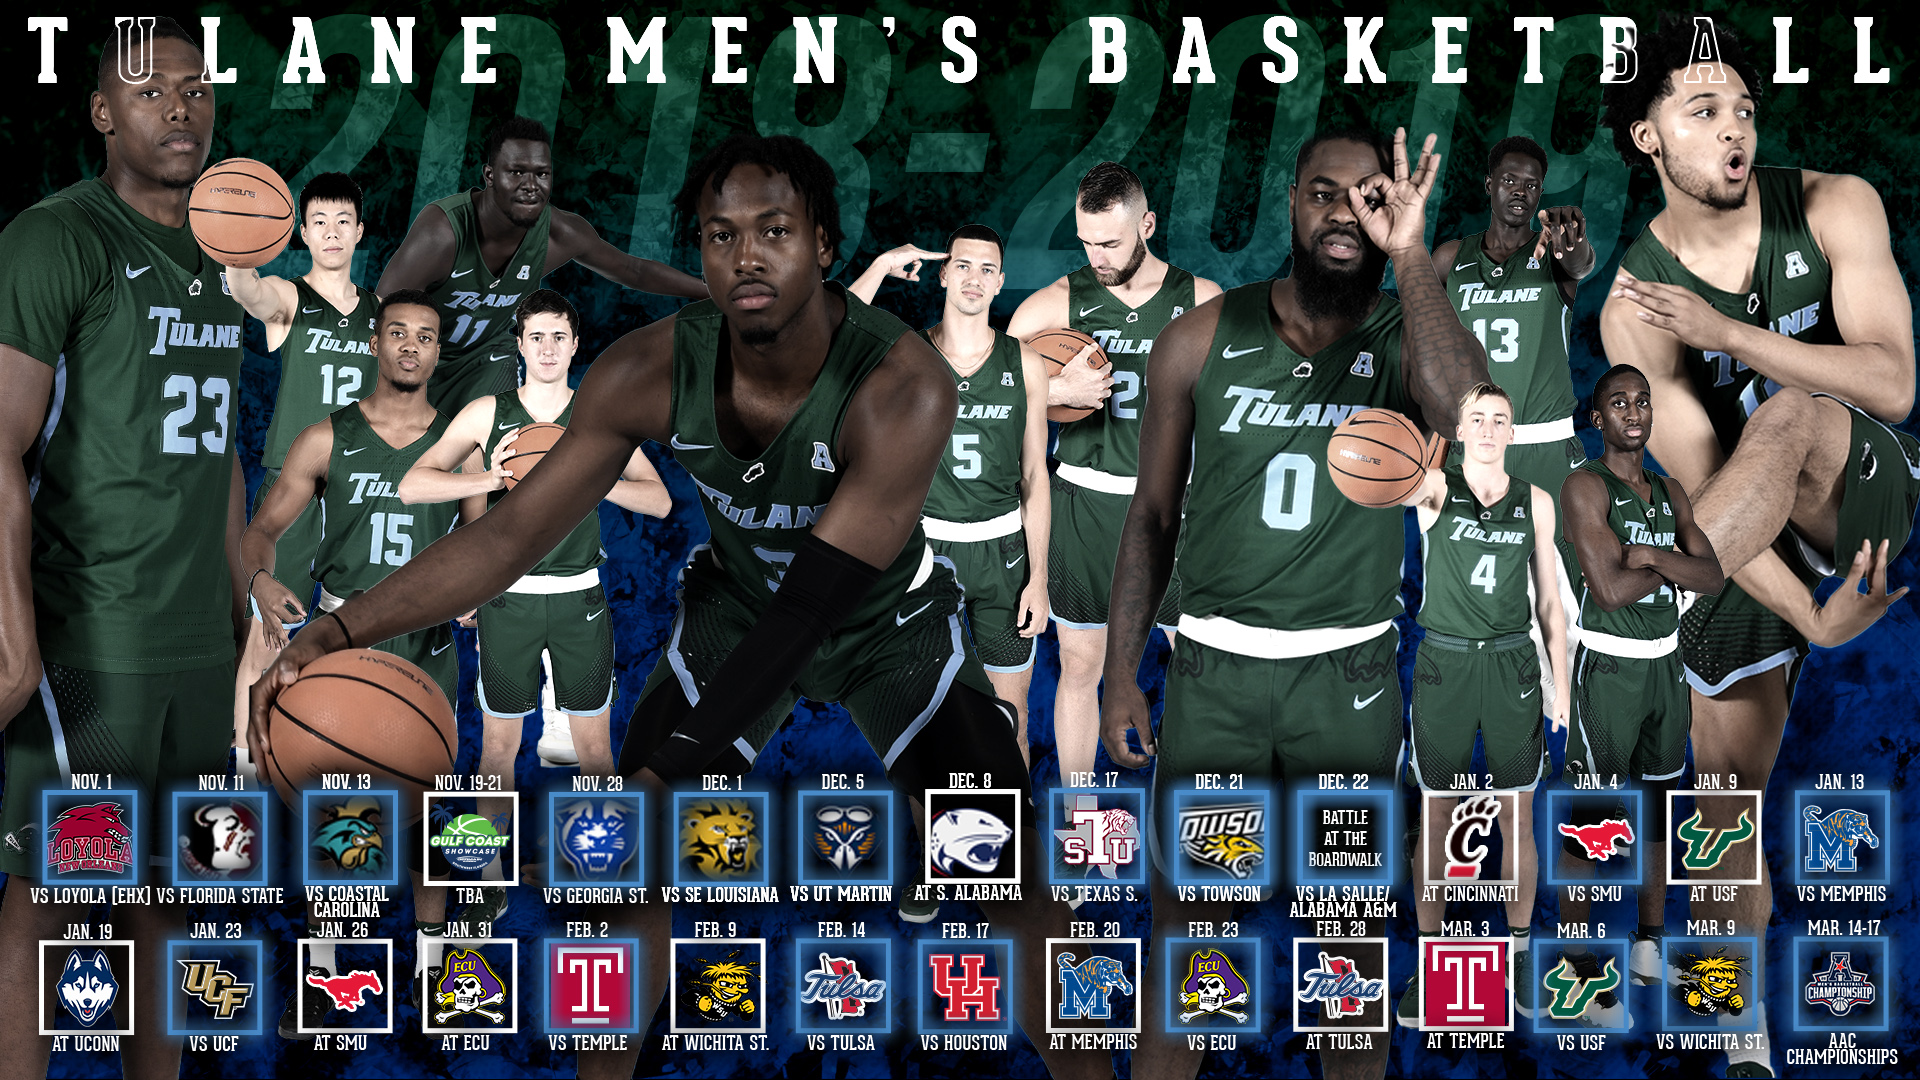 inside the complete tulane men's basketball 2018-19 season schedule